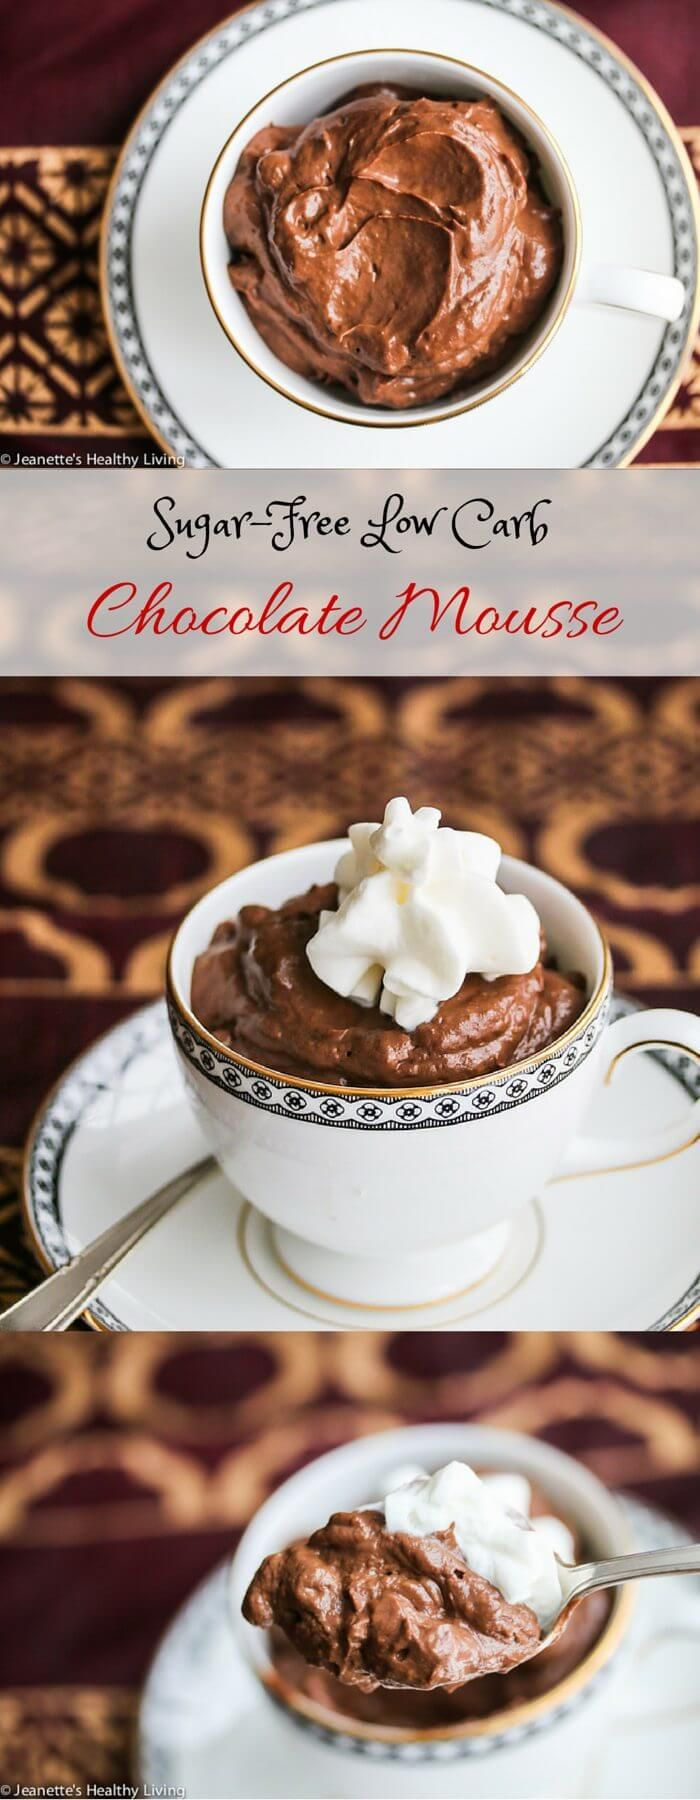 Sugar-Free Low-Carb Dairy-Free Chocolate Mousse Recipe - only 145 calories! Creamy and delicious, this is a secretly healthy dessert